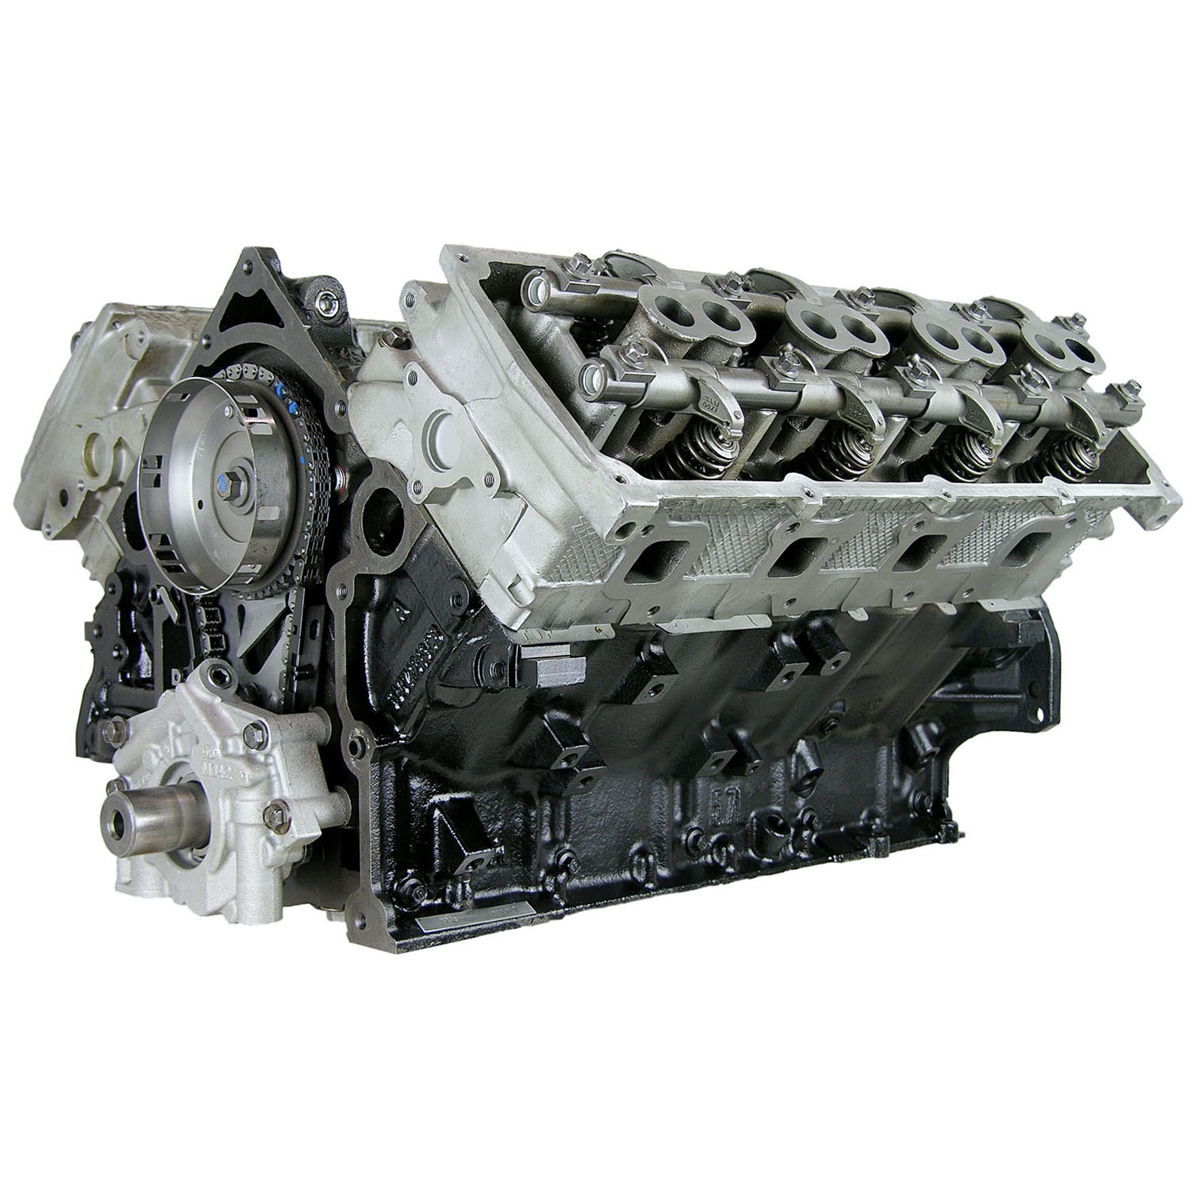 Atk Hp103 Gen Iii Hemi 5 7l 400hp Crate Engine